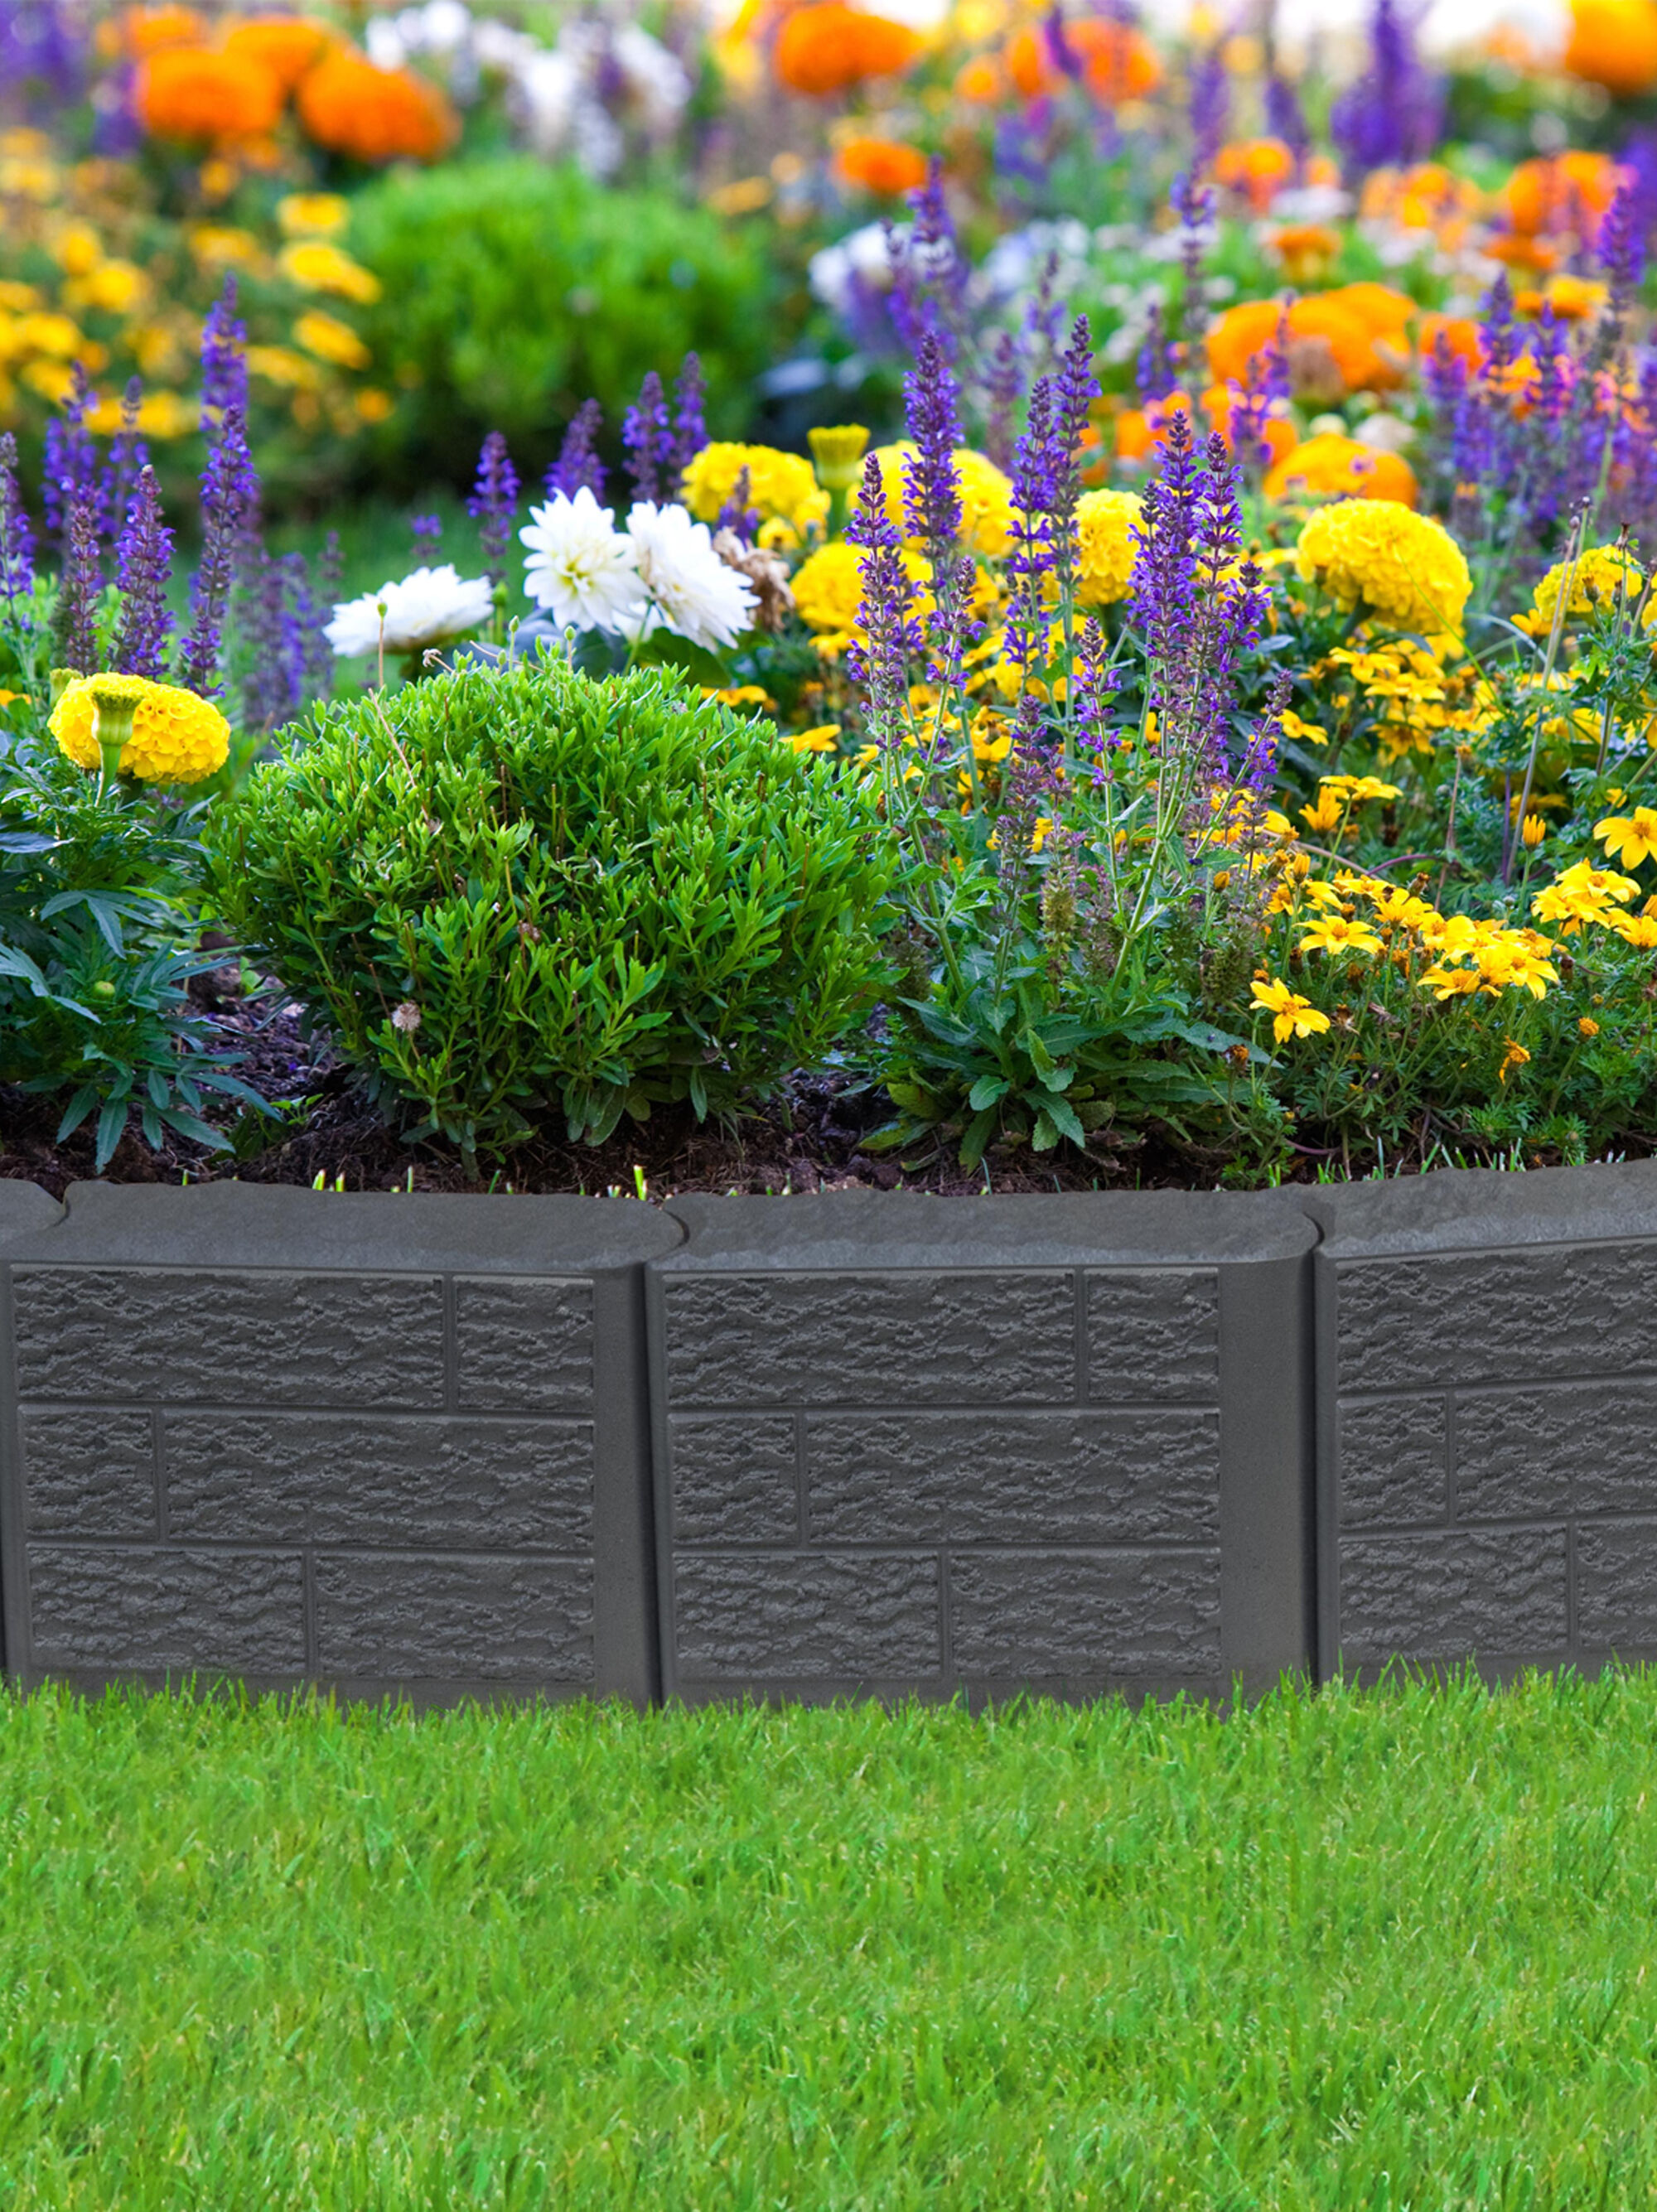 Landscaping Edging Plants : Pound in landscape edging plastic lawn gardeners